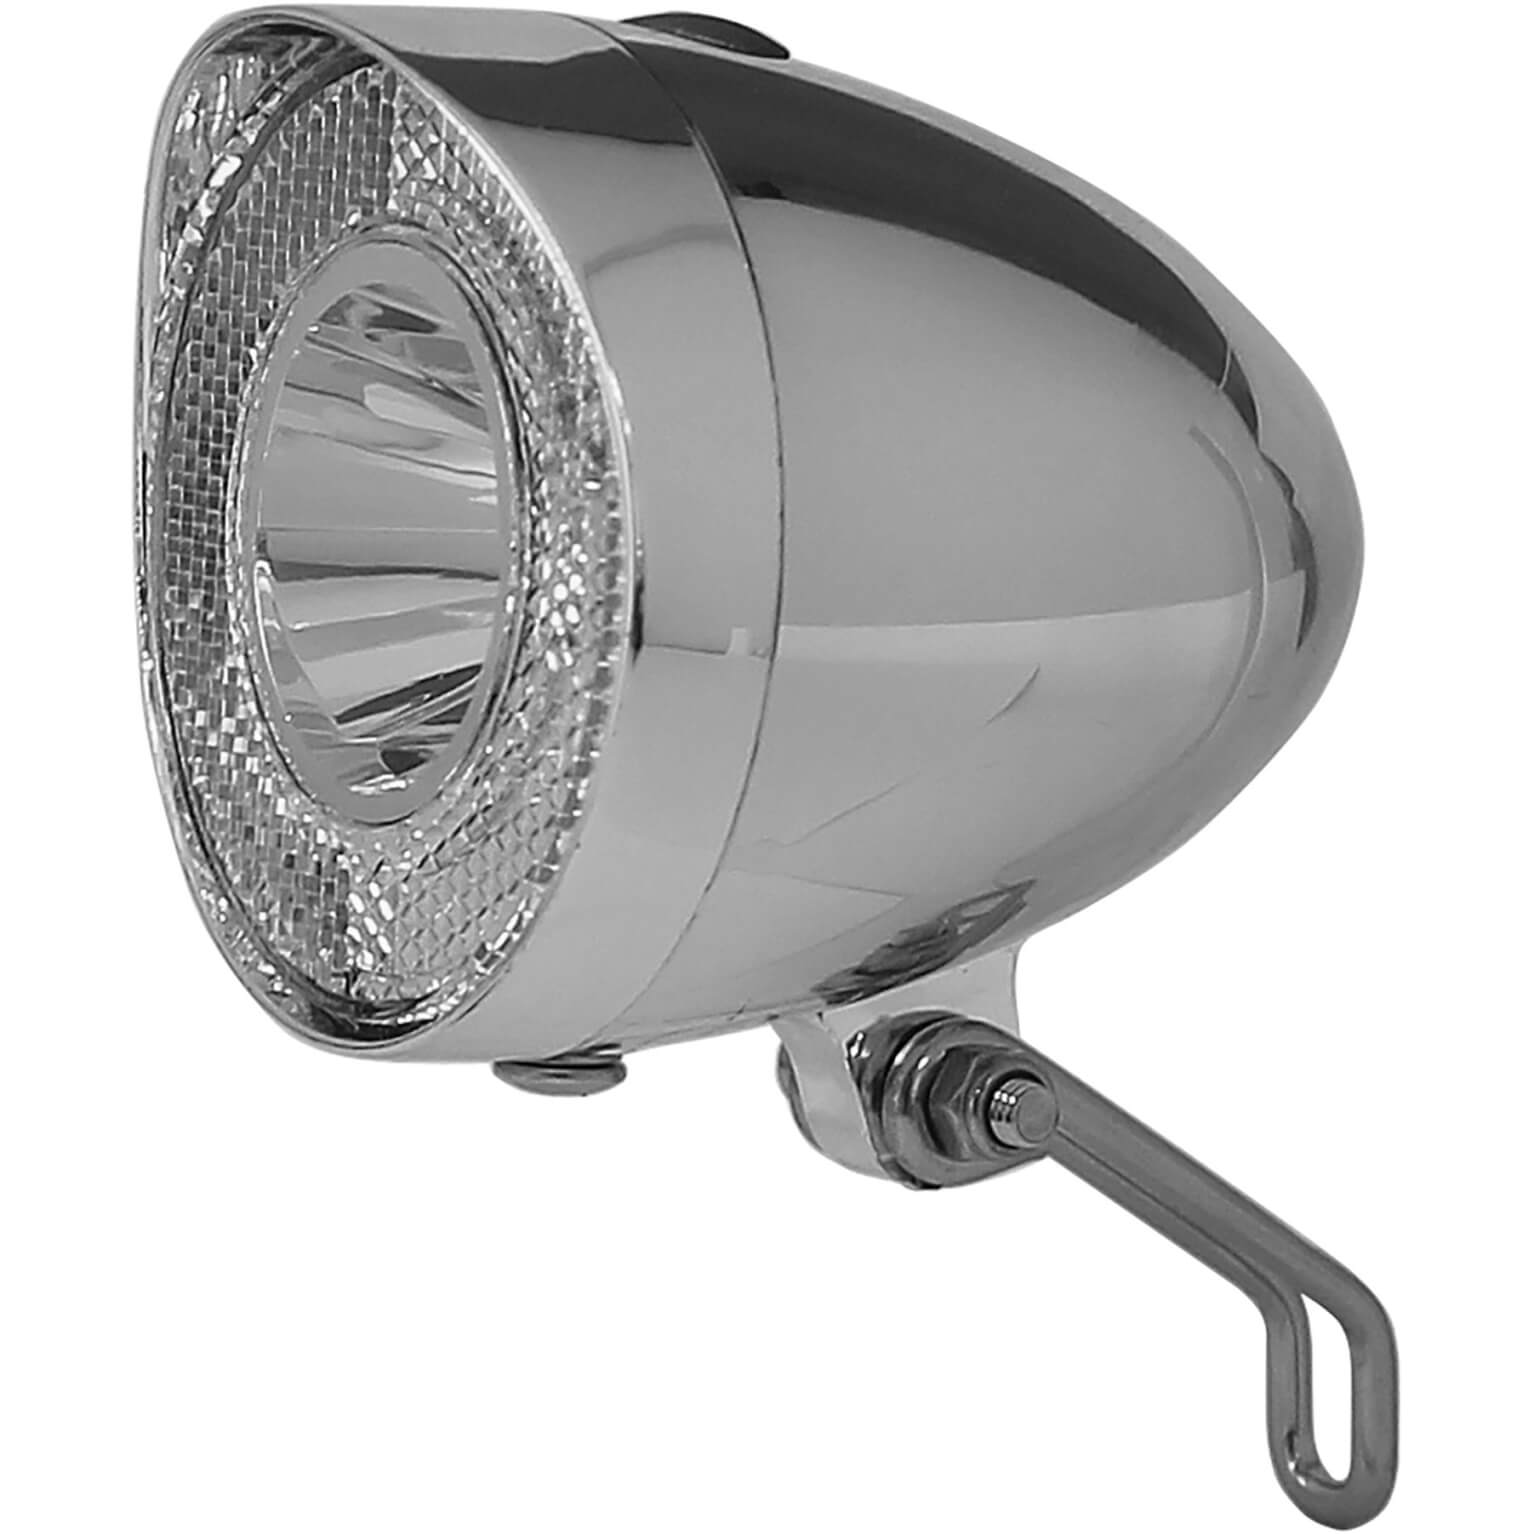 Union Headlight UN-4915 Retro Led on Batteries - Chrome